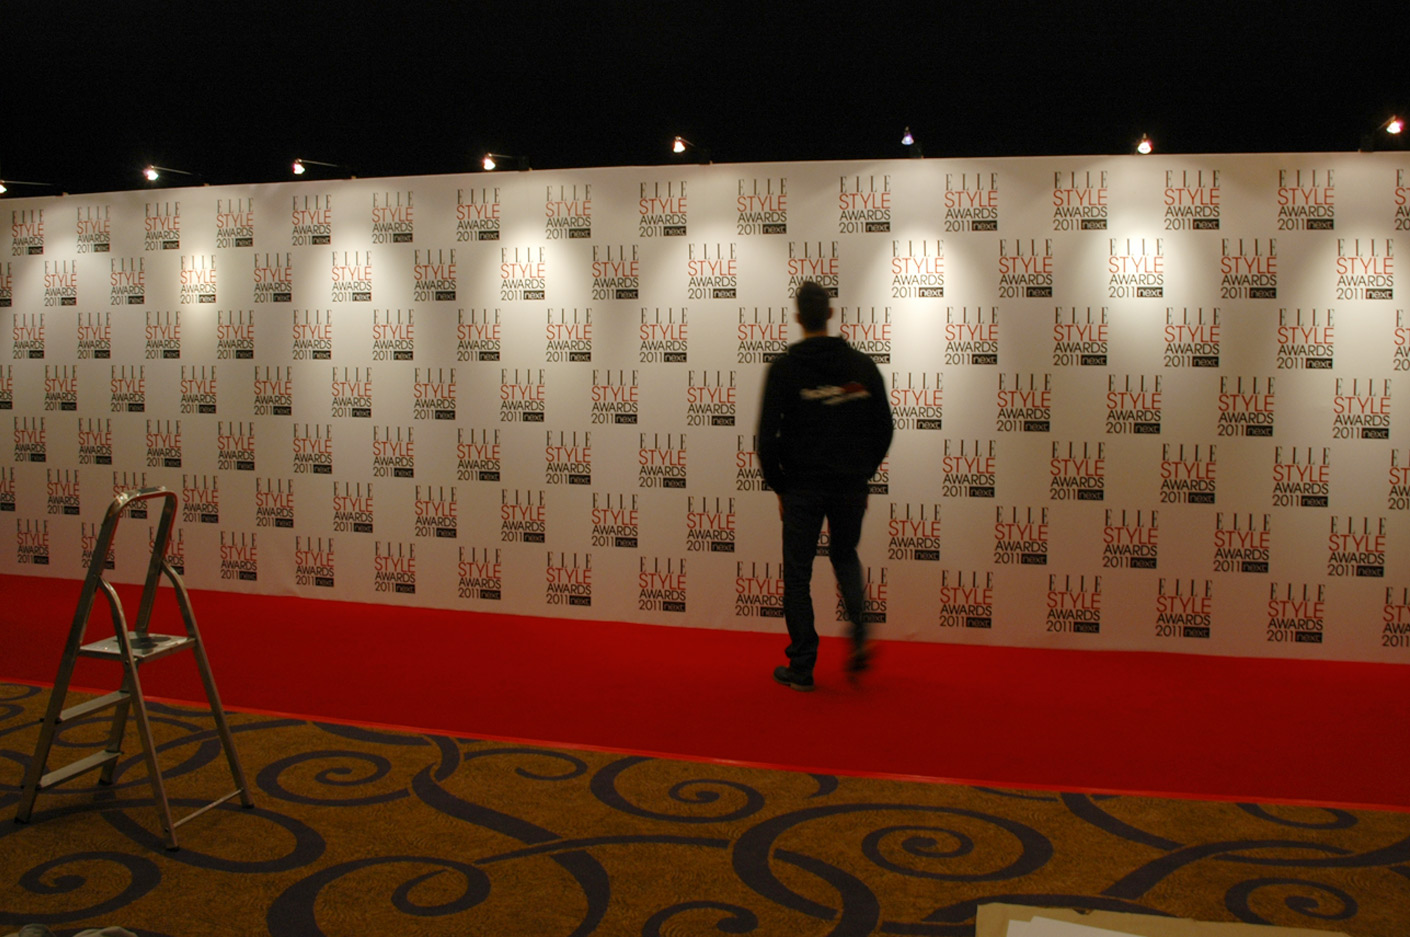 Bespoke Step & Repeat board